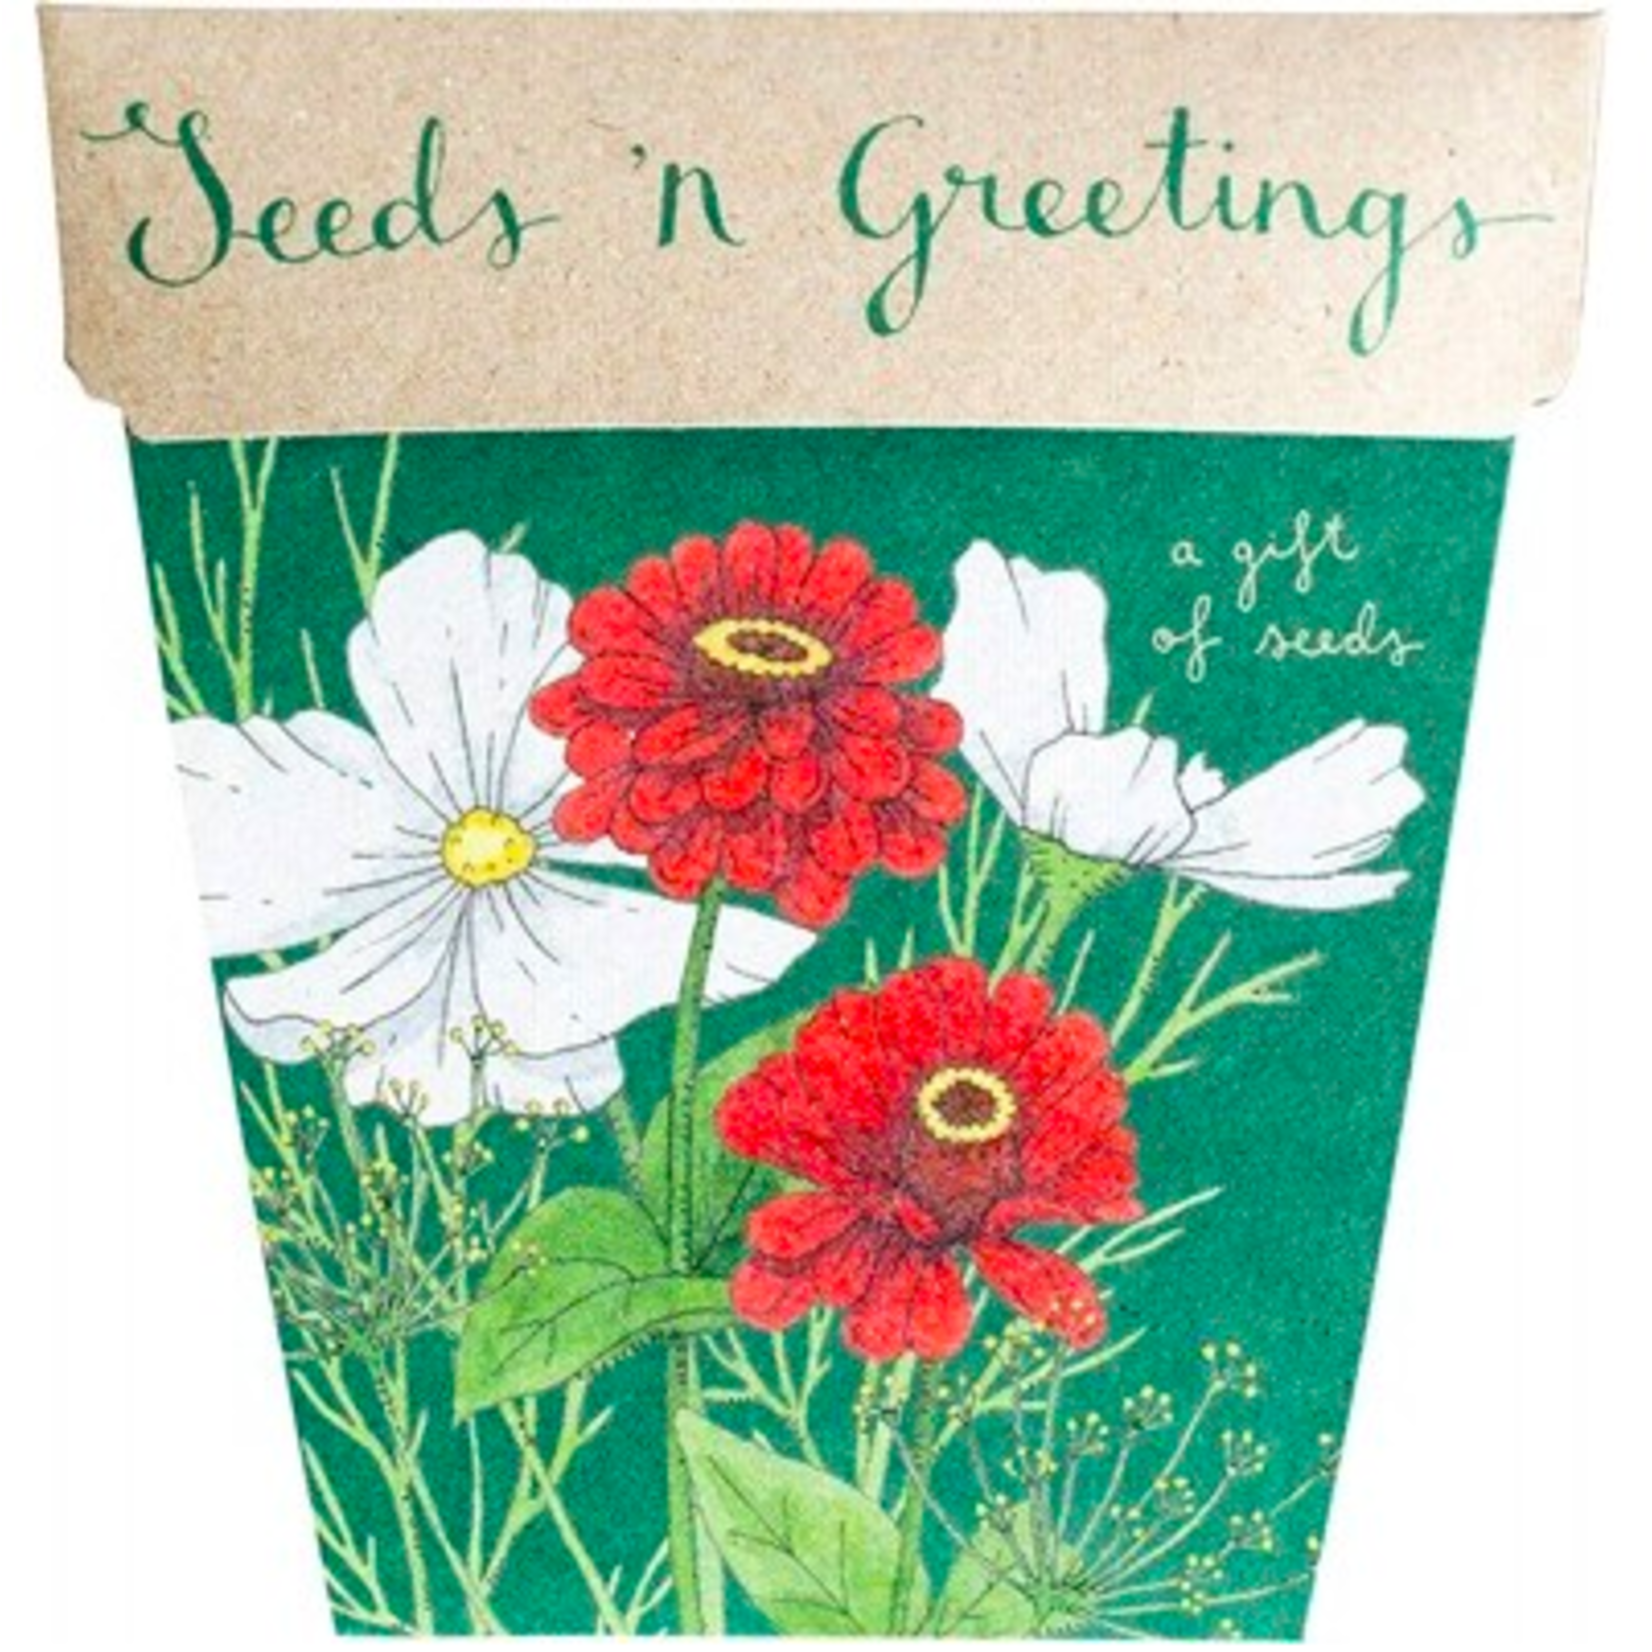 Sow 'n Sow Sow 'N Sow Gift of Seeds Seeds & Greetings